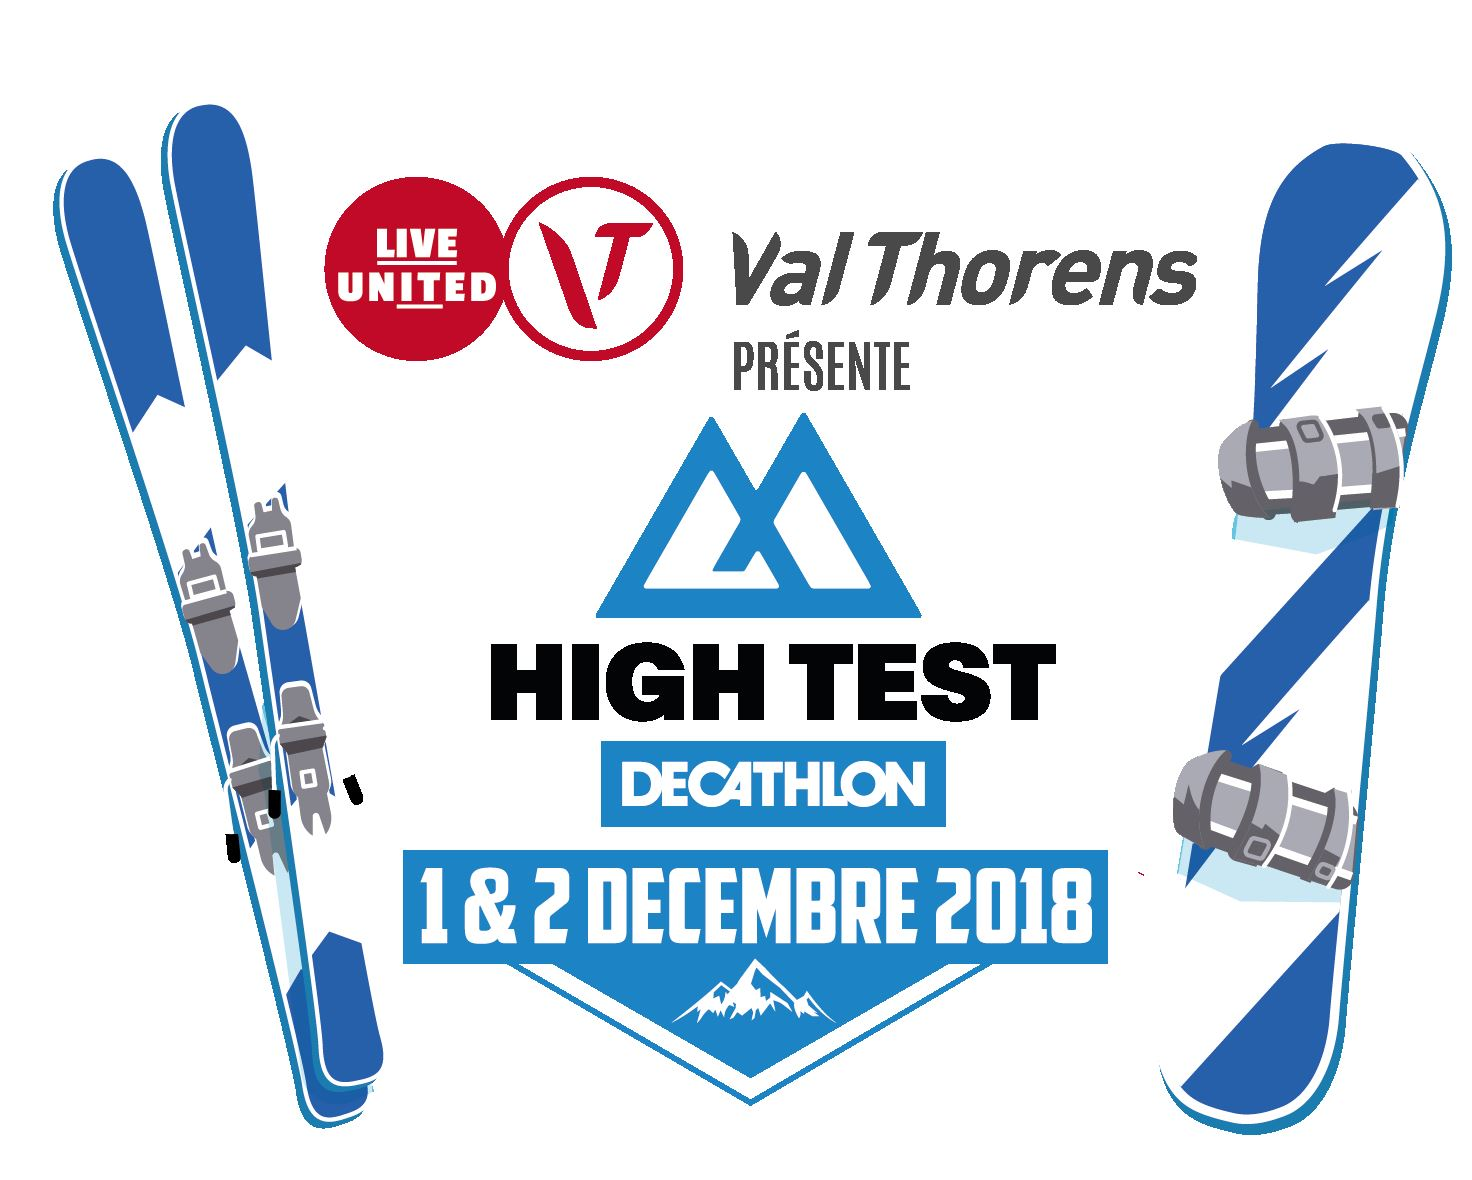 WEEK-END HIGH TEST BY DECATHLON - DU 30/11/18 AU 02/12/18 - EN STUDIO ET APPARTEMENT - A PARTIR DE 123 € / PERS*